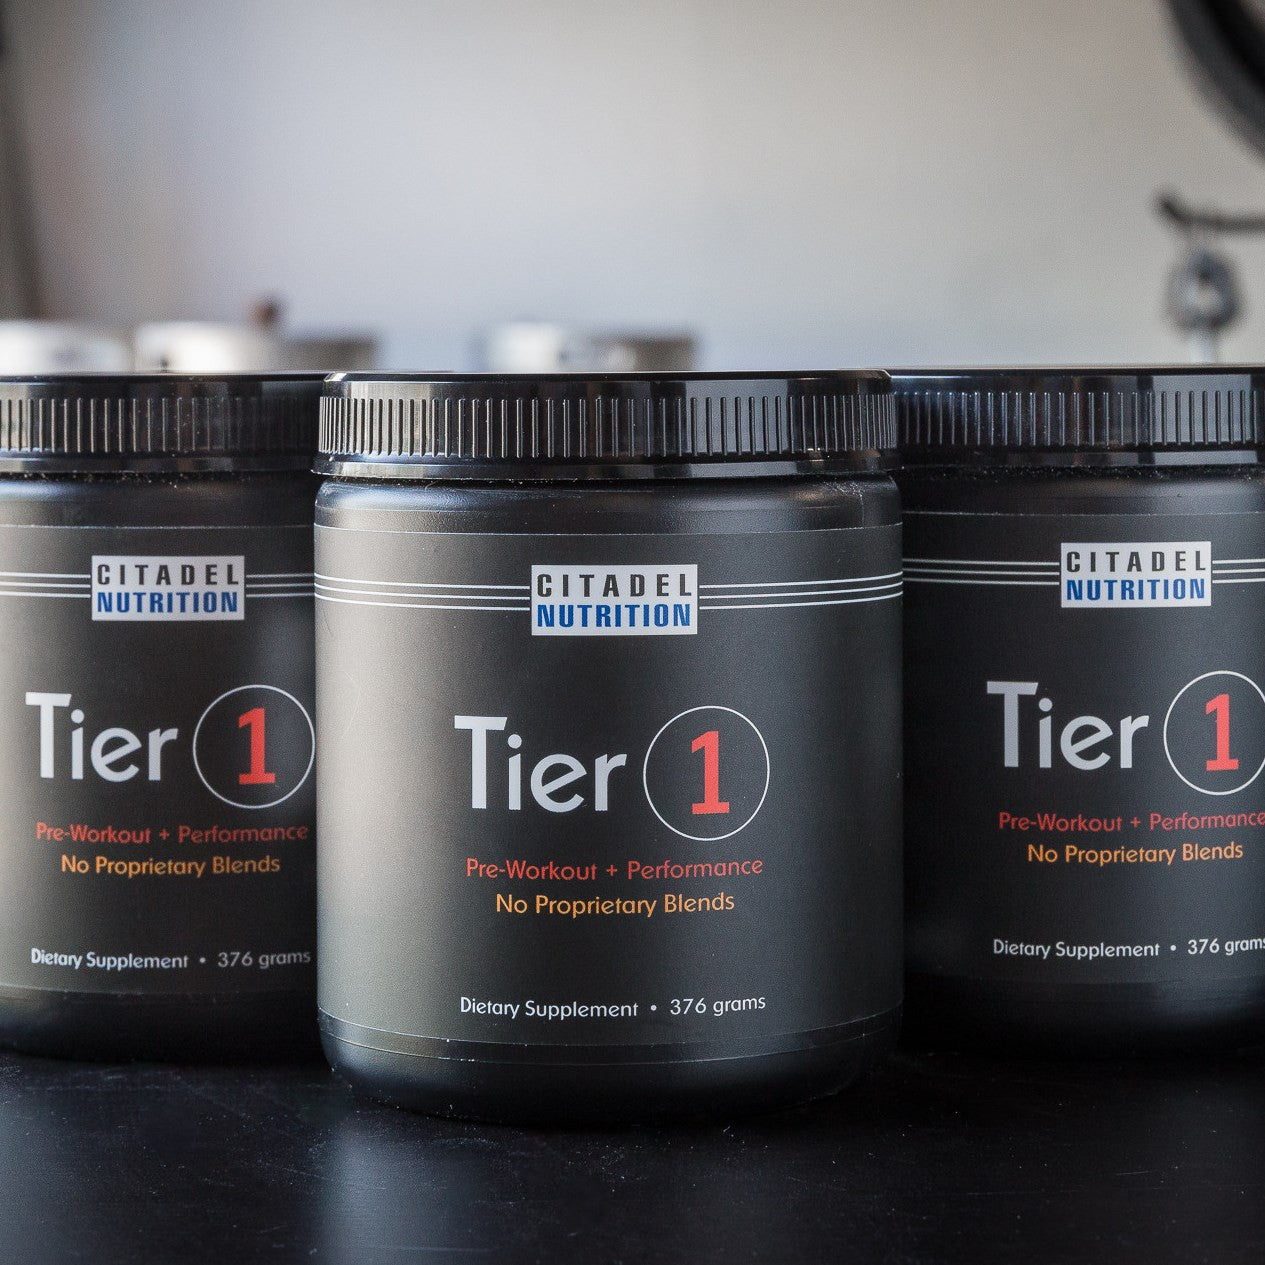 Tier 1 vs. Jack3d: which preworkout to take?